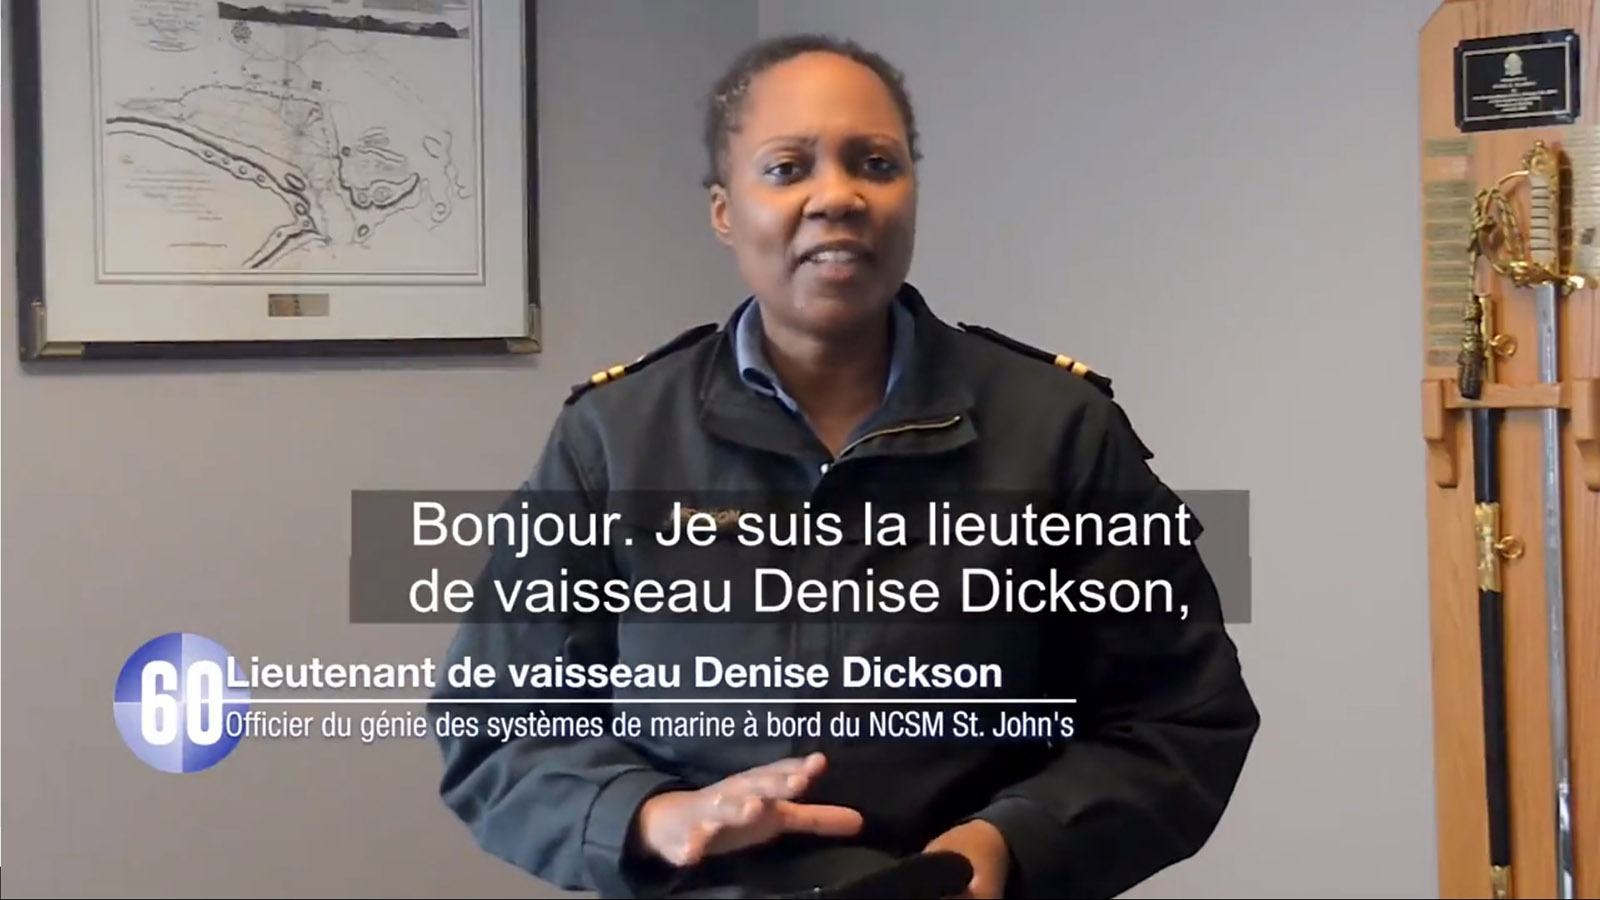 Diapositive - Ltv Denise Dickson